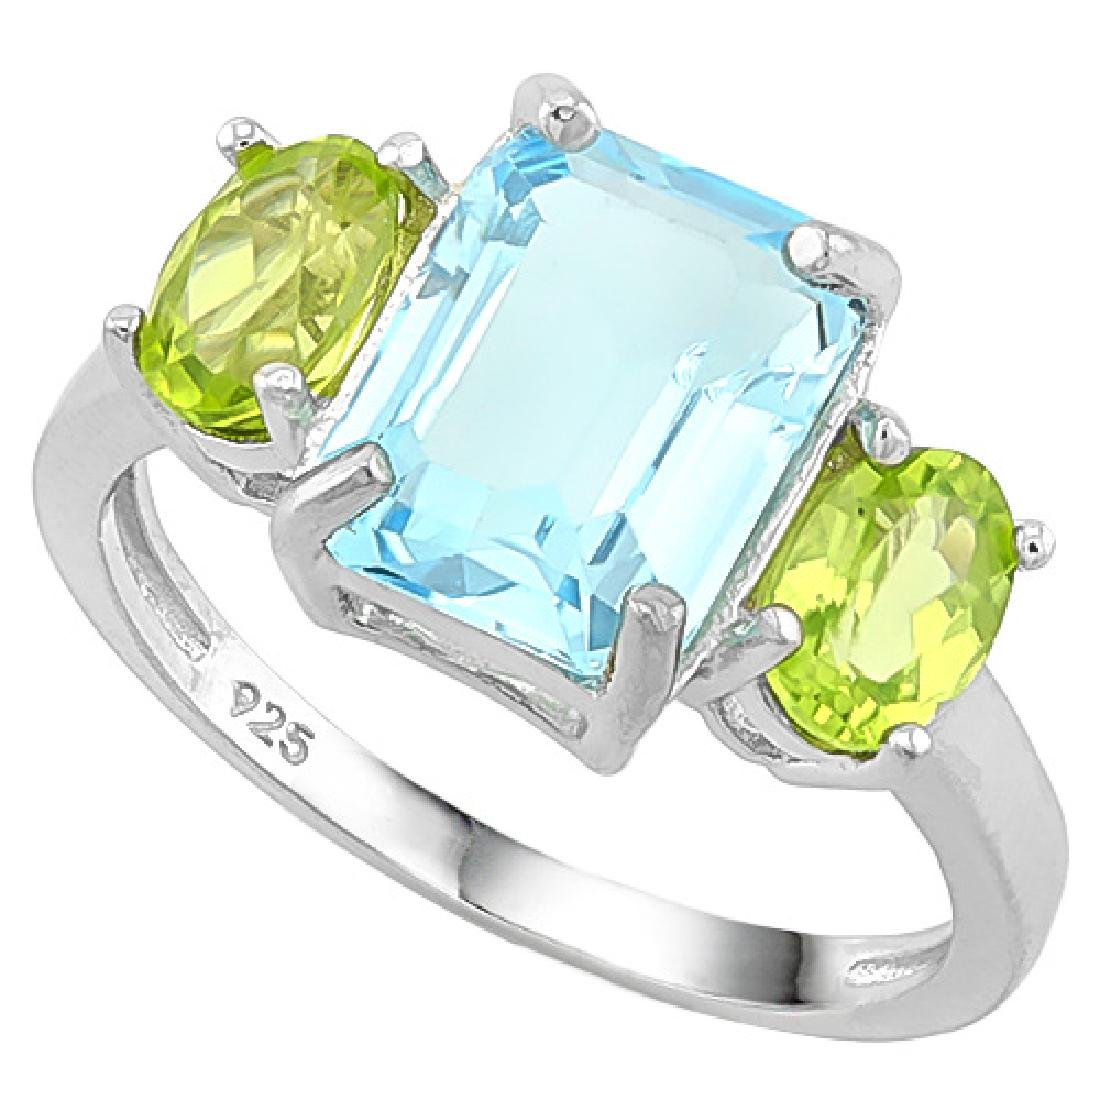 SPECIAL 4CT SWISS BLUE TOPAZ/PERIDOT STERLING RING